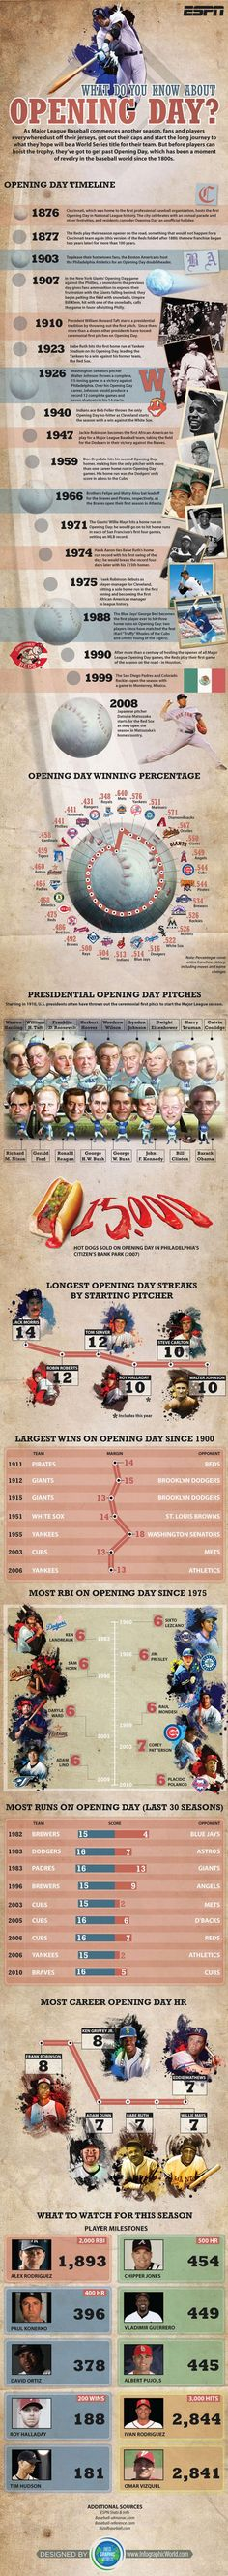 Ultimate Opening Day Infographic